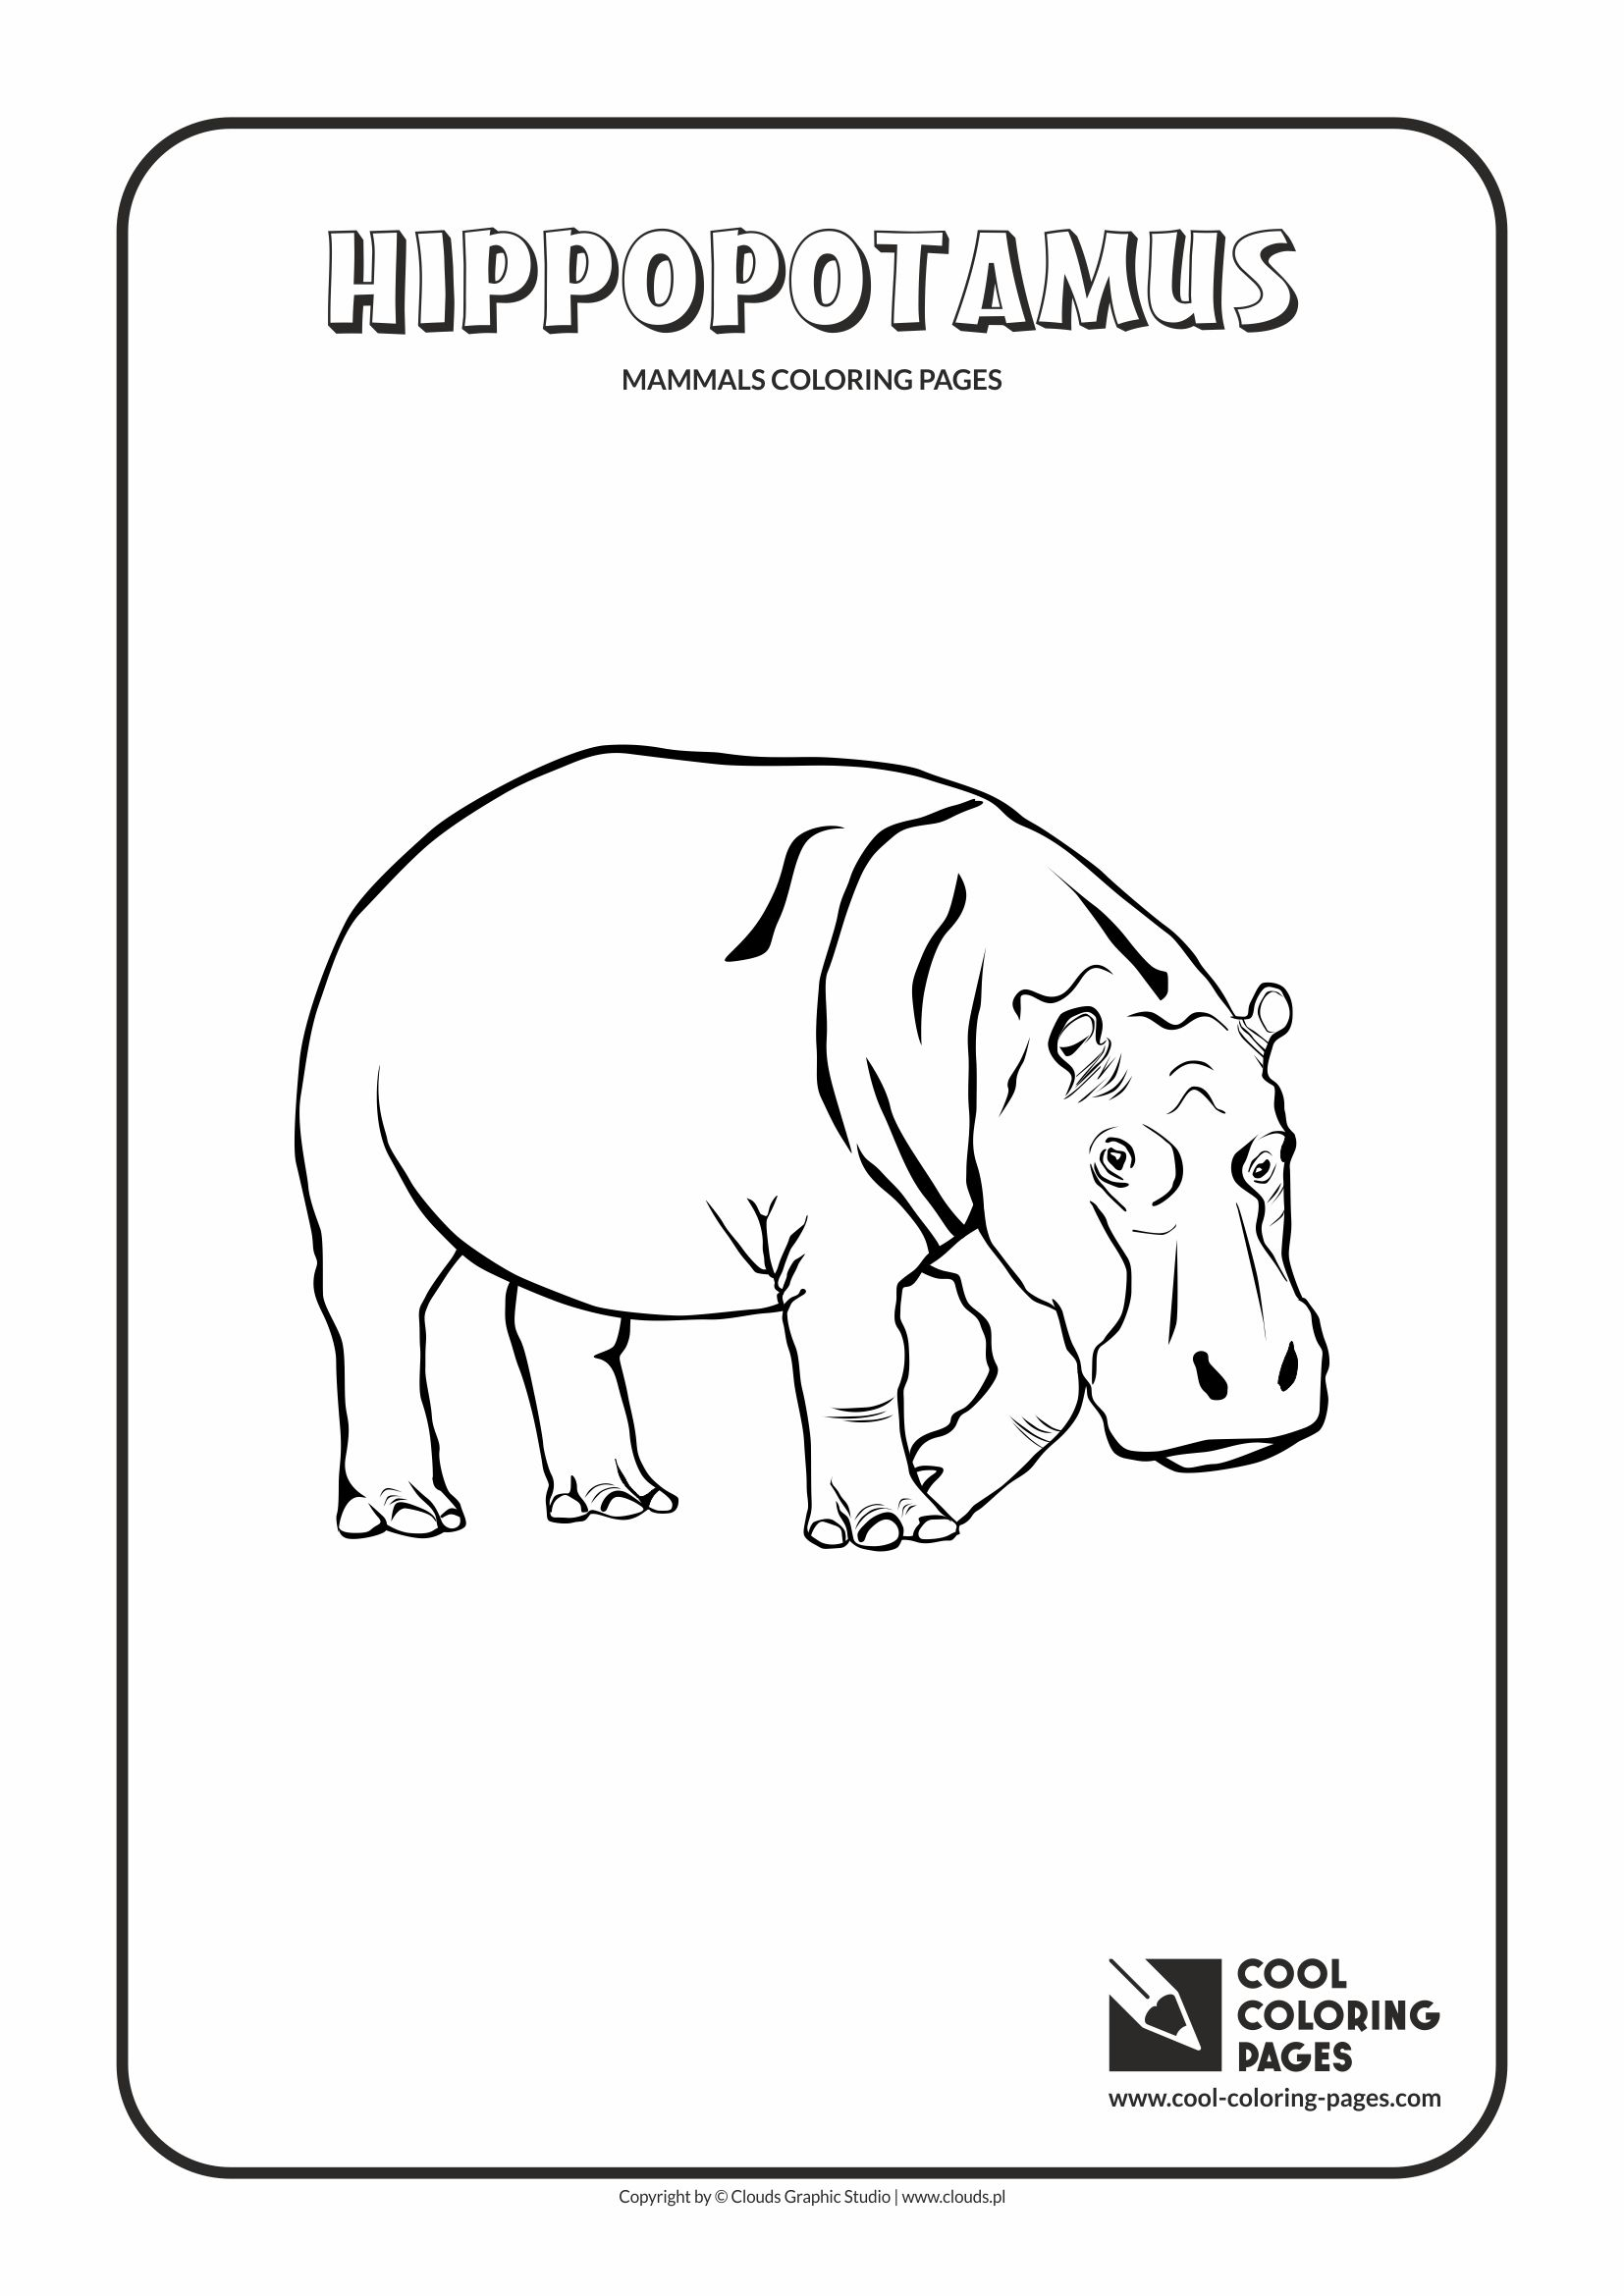 Cool Coloring Pages Hippopotamus